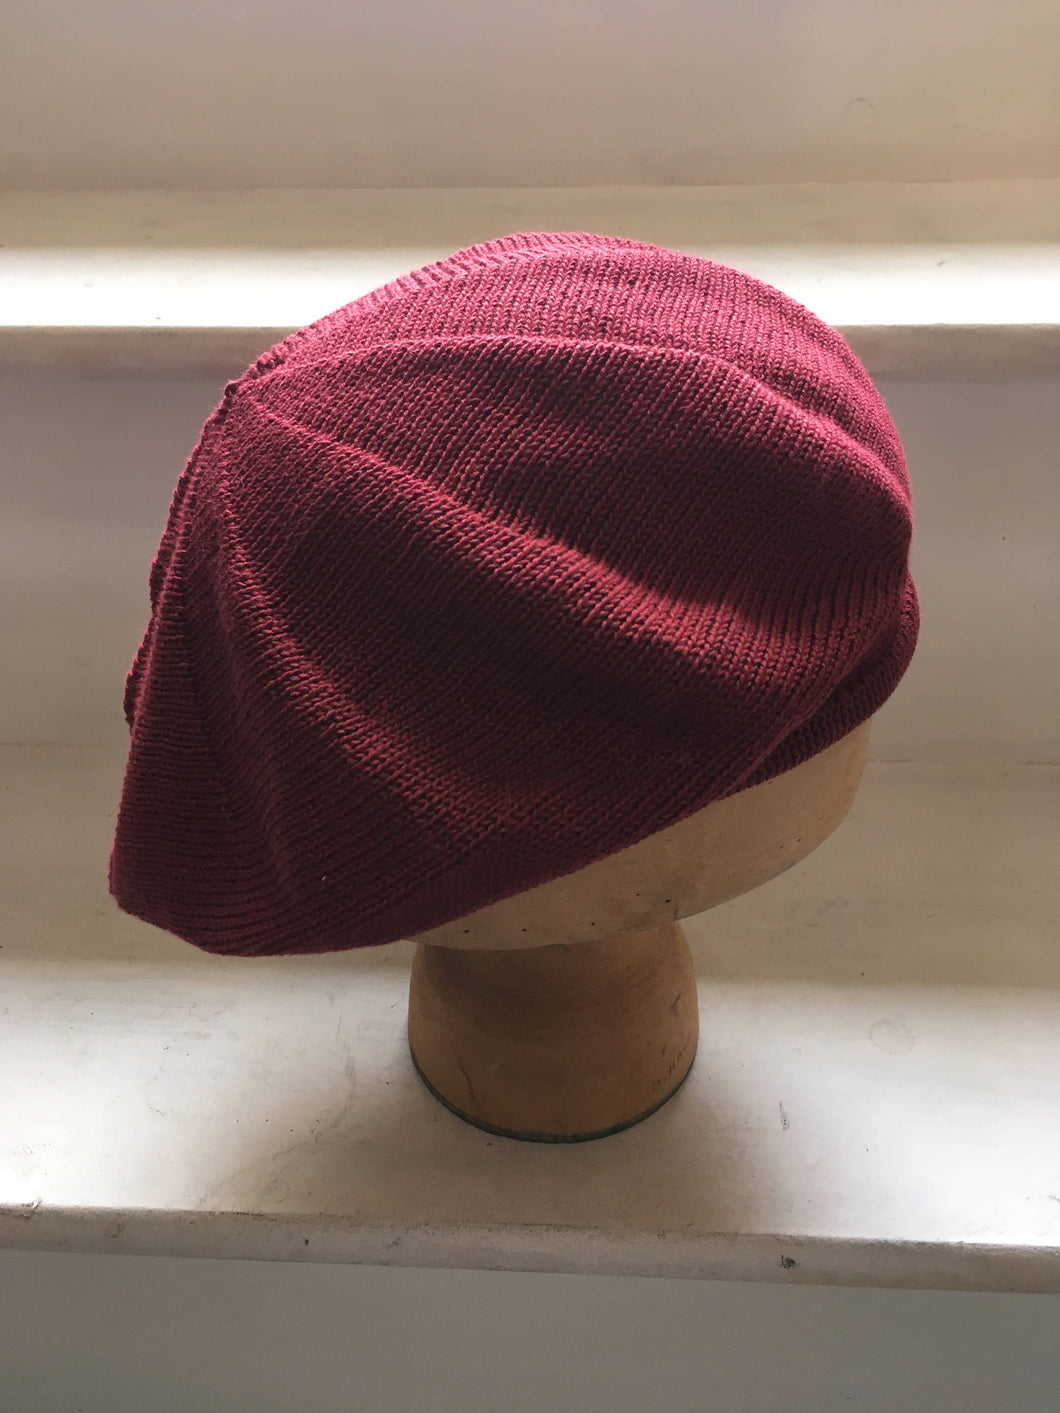 Maroon Cotton Knitted Unisex Tam by Lord and Taft